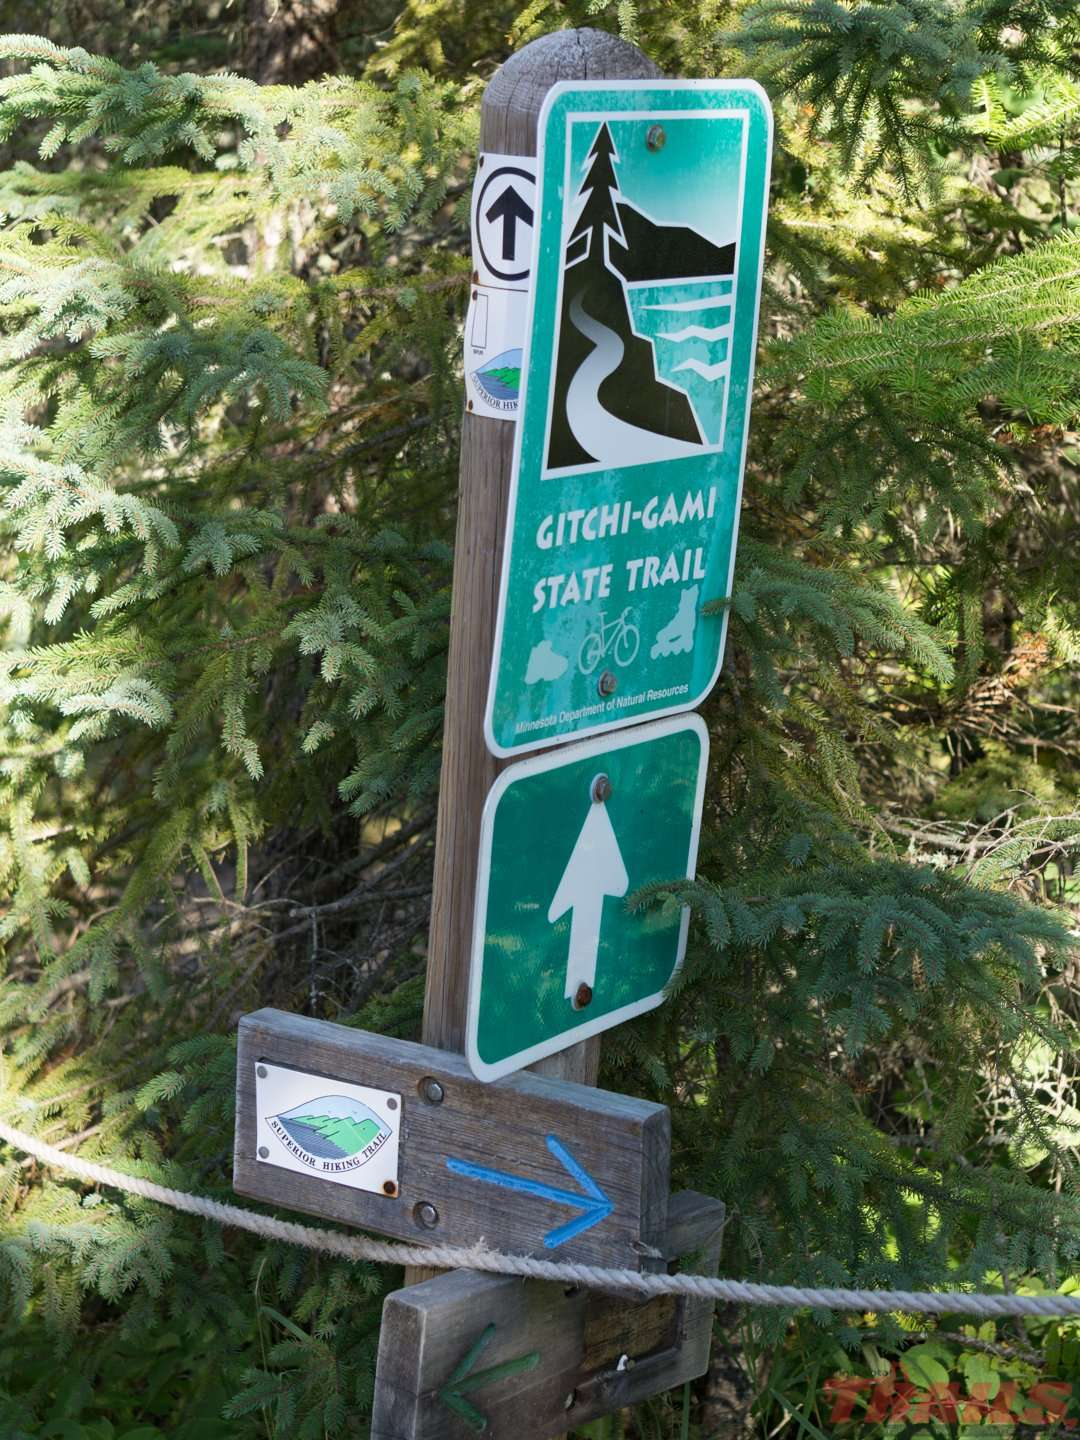 The Gitchi-Gami State Trail and Superior Hiking Trail cross paths at Temperance River State Park